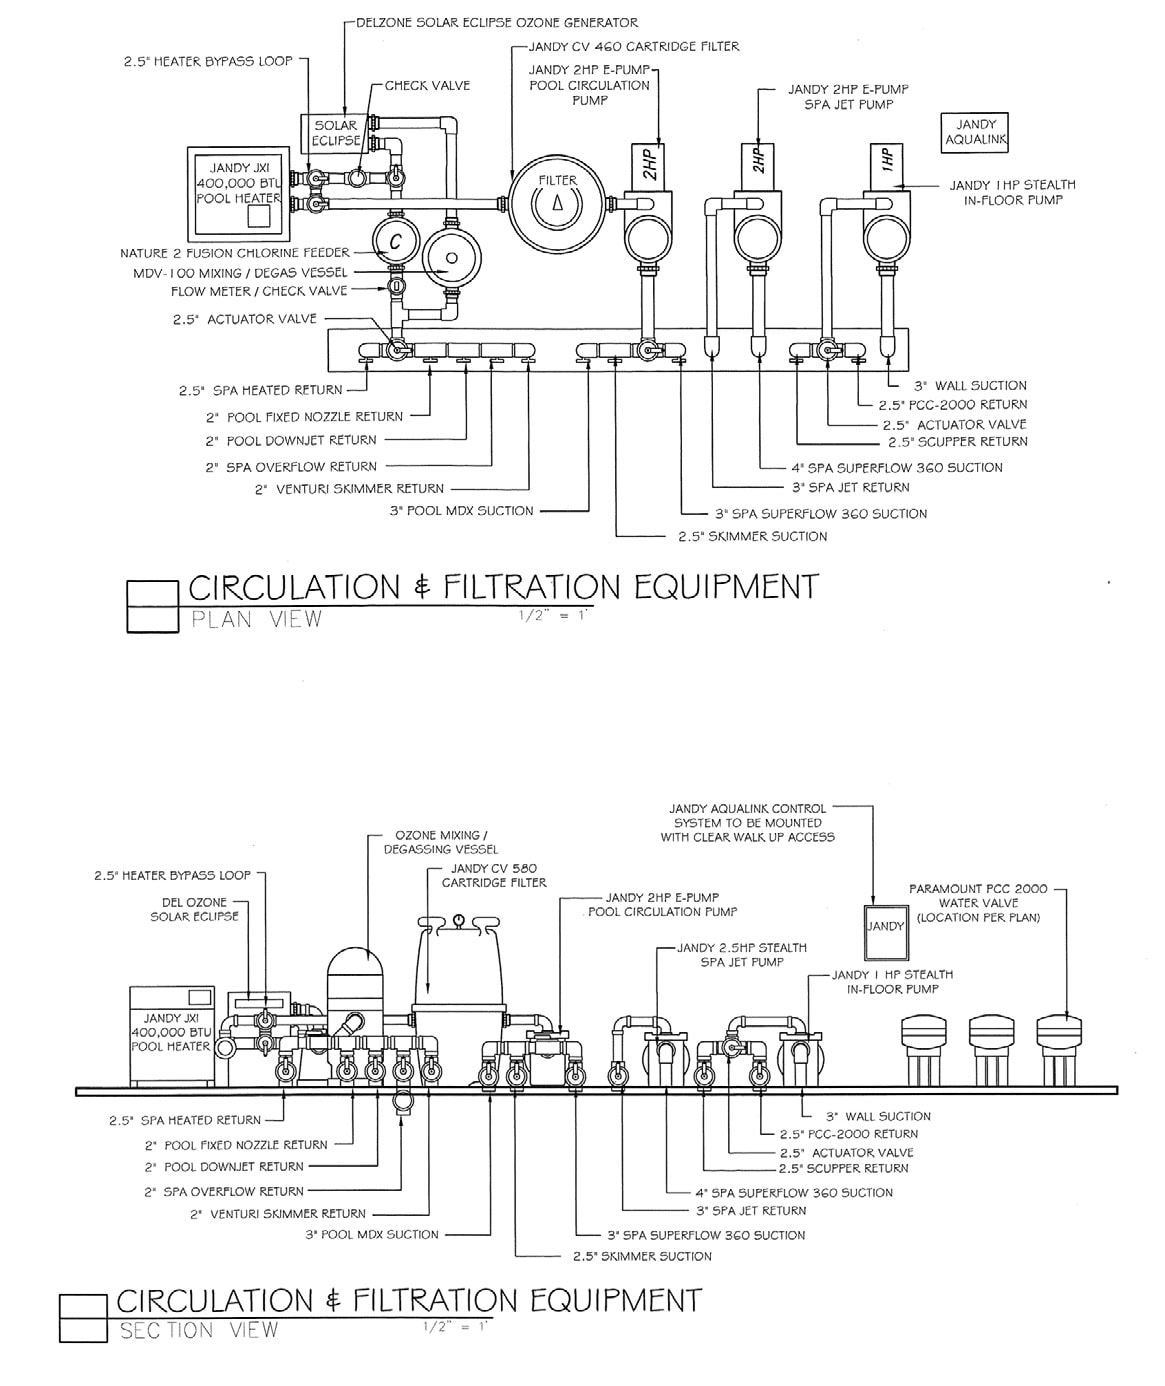 hight resolution of taking a little more time to plan out the equipment placement beyond a typical pool equipment plumbing diagram can save time on installation and minimize